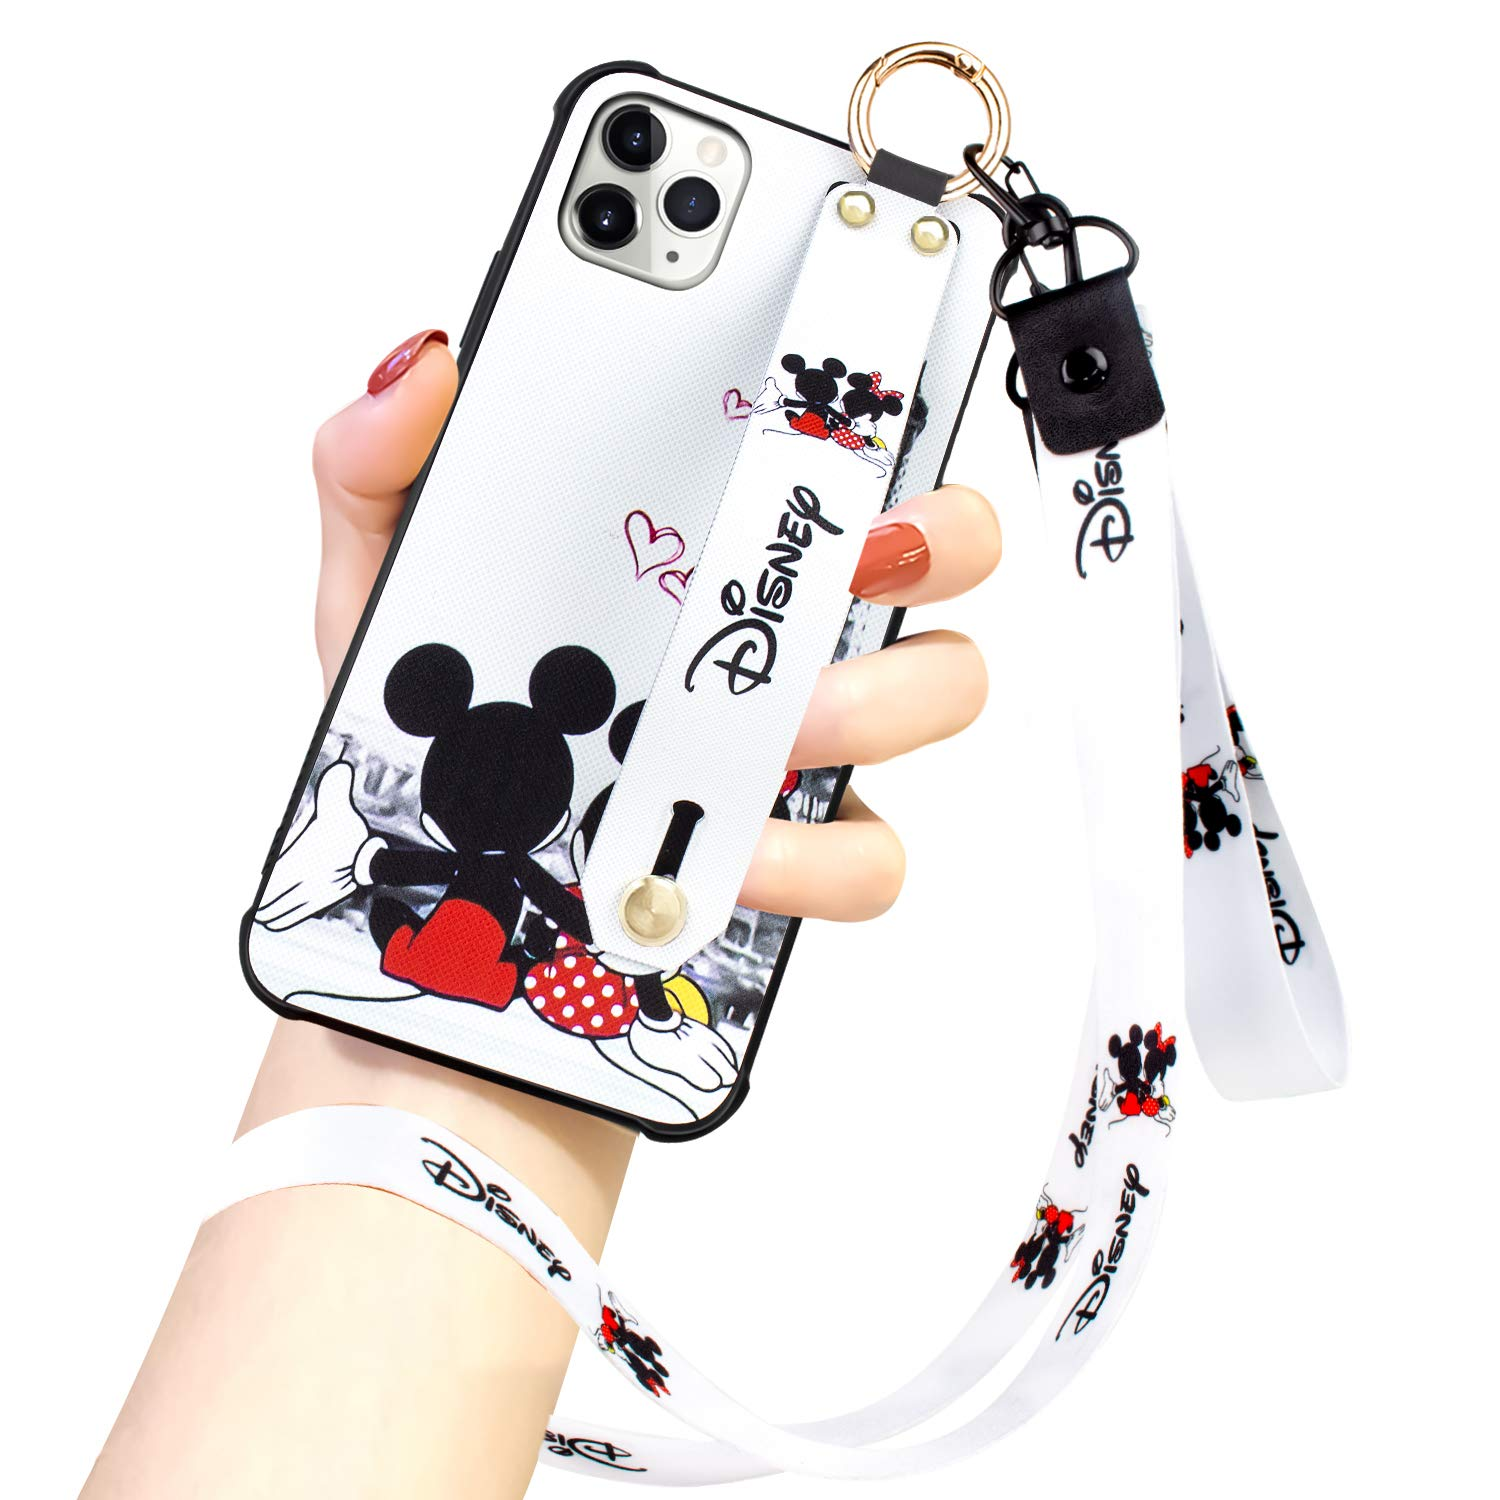 DISNEY COLLECTION iPhone 11 Pro Max Case, Disney Mickey Couple Street Fashion Wrist Strap Band Protector Phone Cover Full-Body Bumper Lanyard Case for iPhone 11 PRO MAX 6.5 Inch 2019